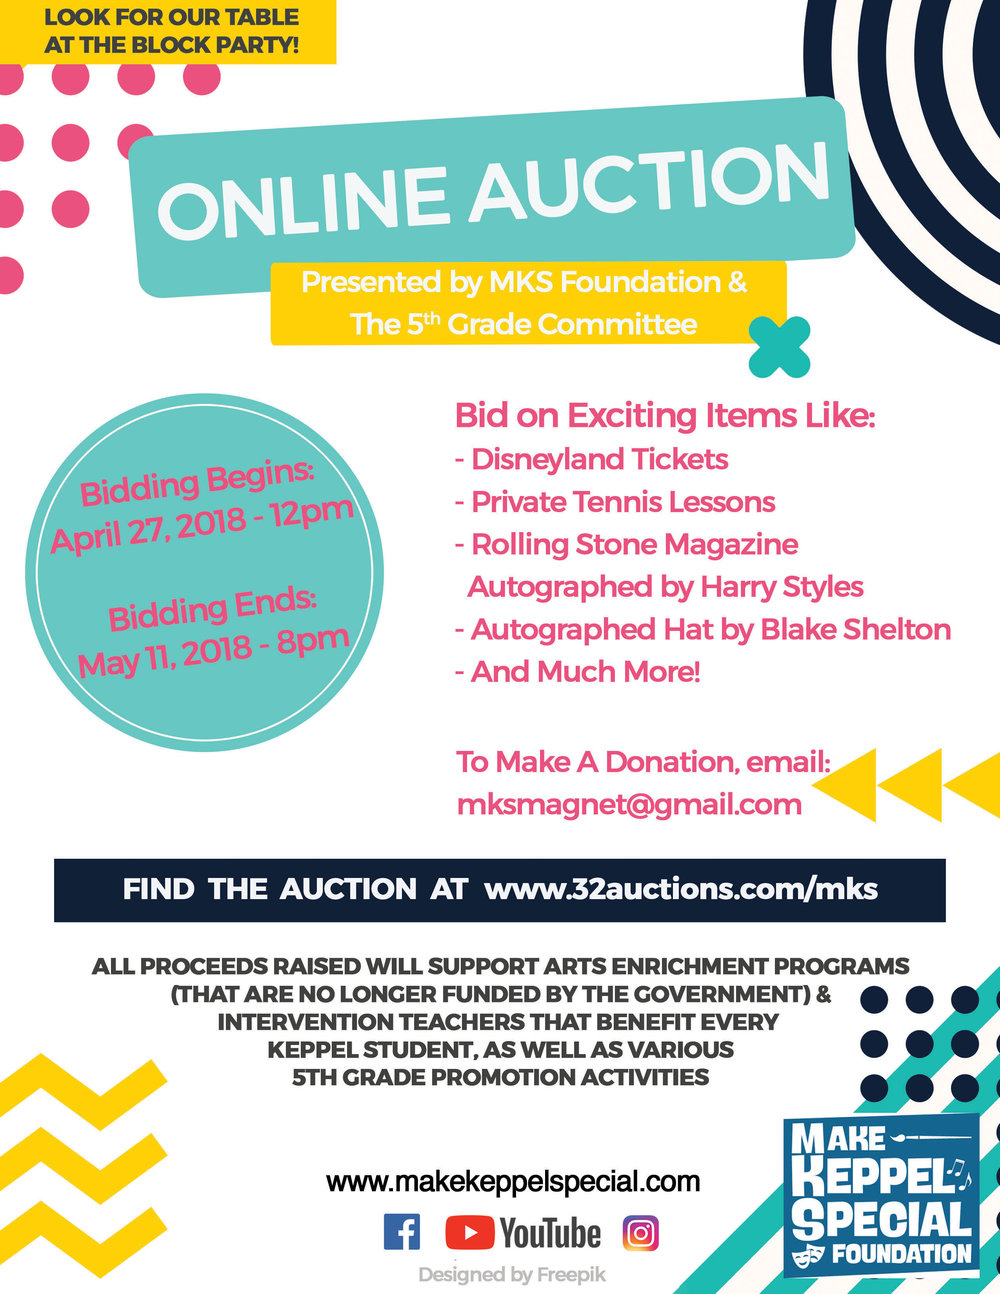 MKS Online Auction Flier 2018_C_rgb.jpg